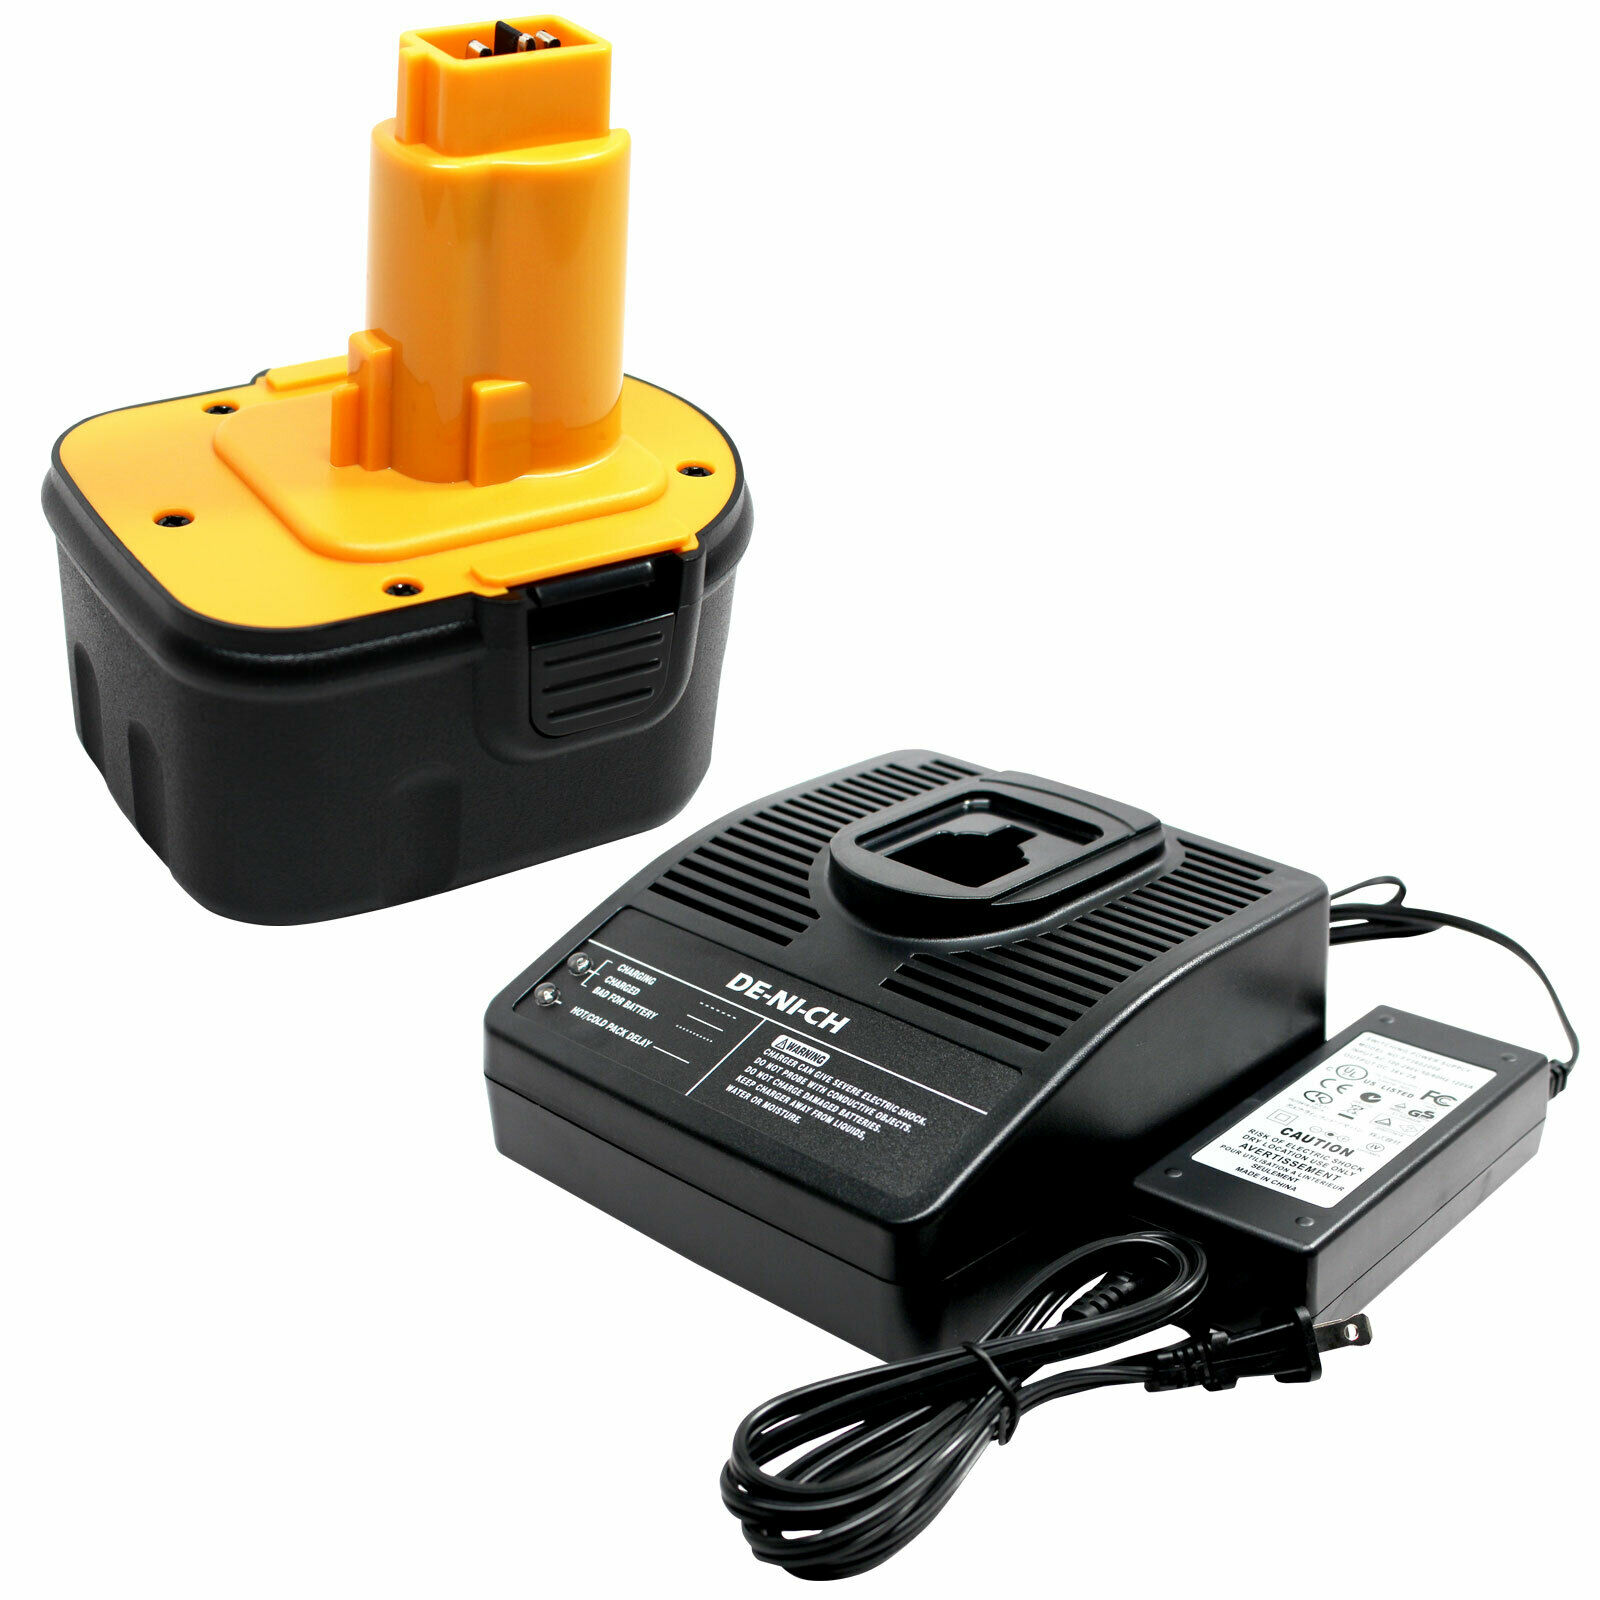 Battery +Universal Charger works with DeWalt DW9072, DW980 12V 1300mAh